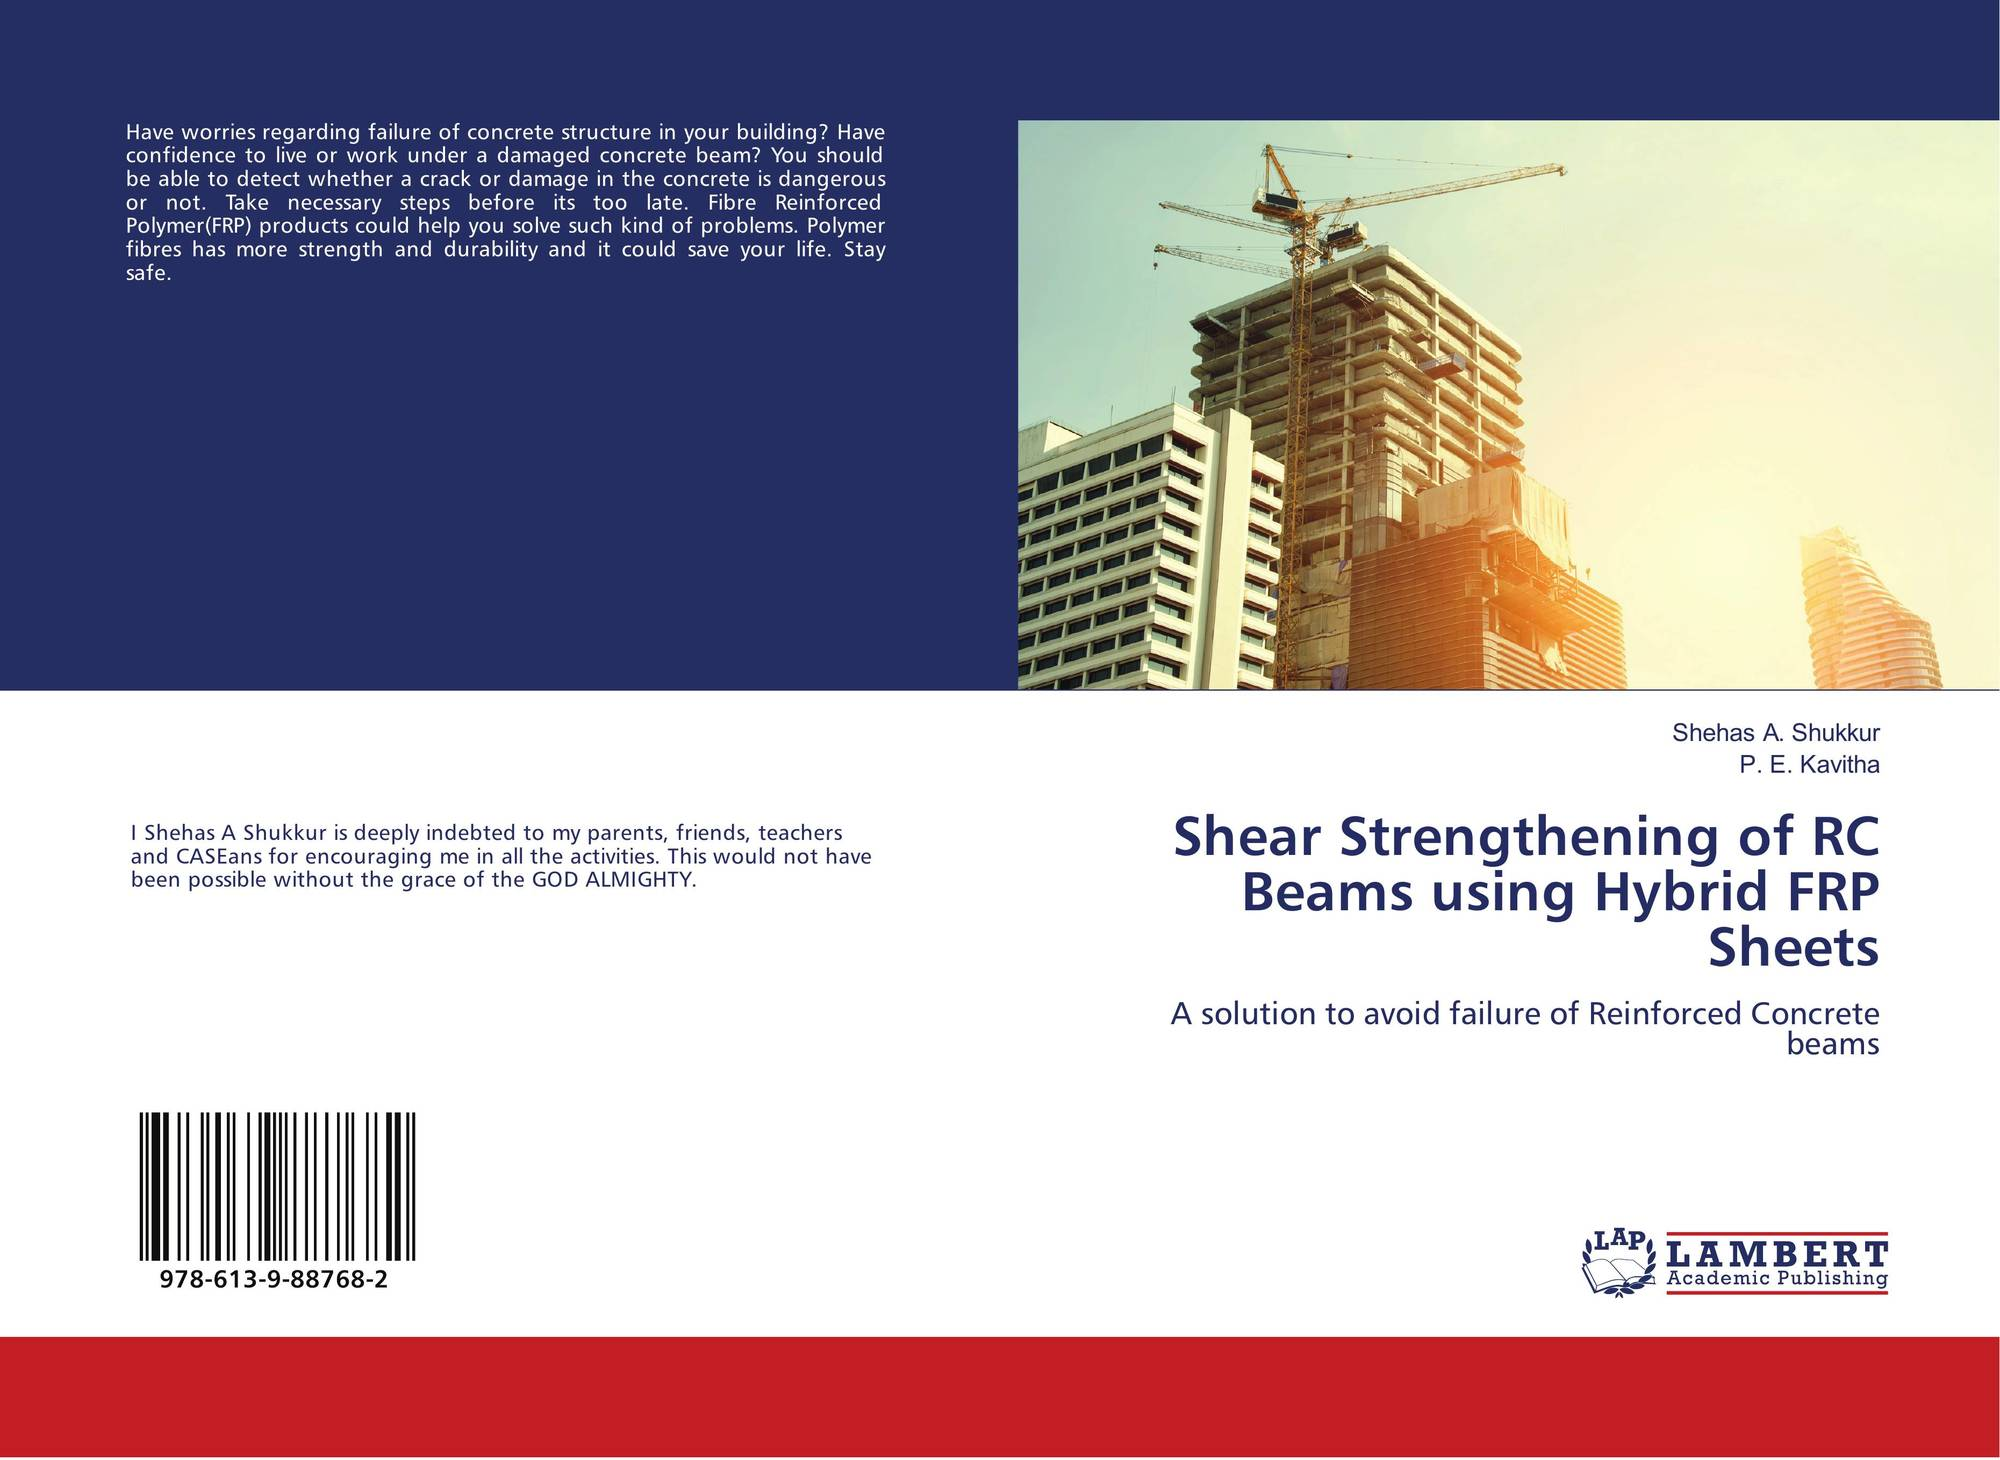 Shear Strengthening of RC Beams using Hybrid FRP Sheets, 978